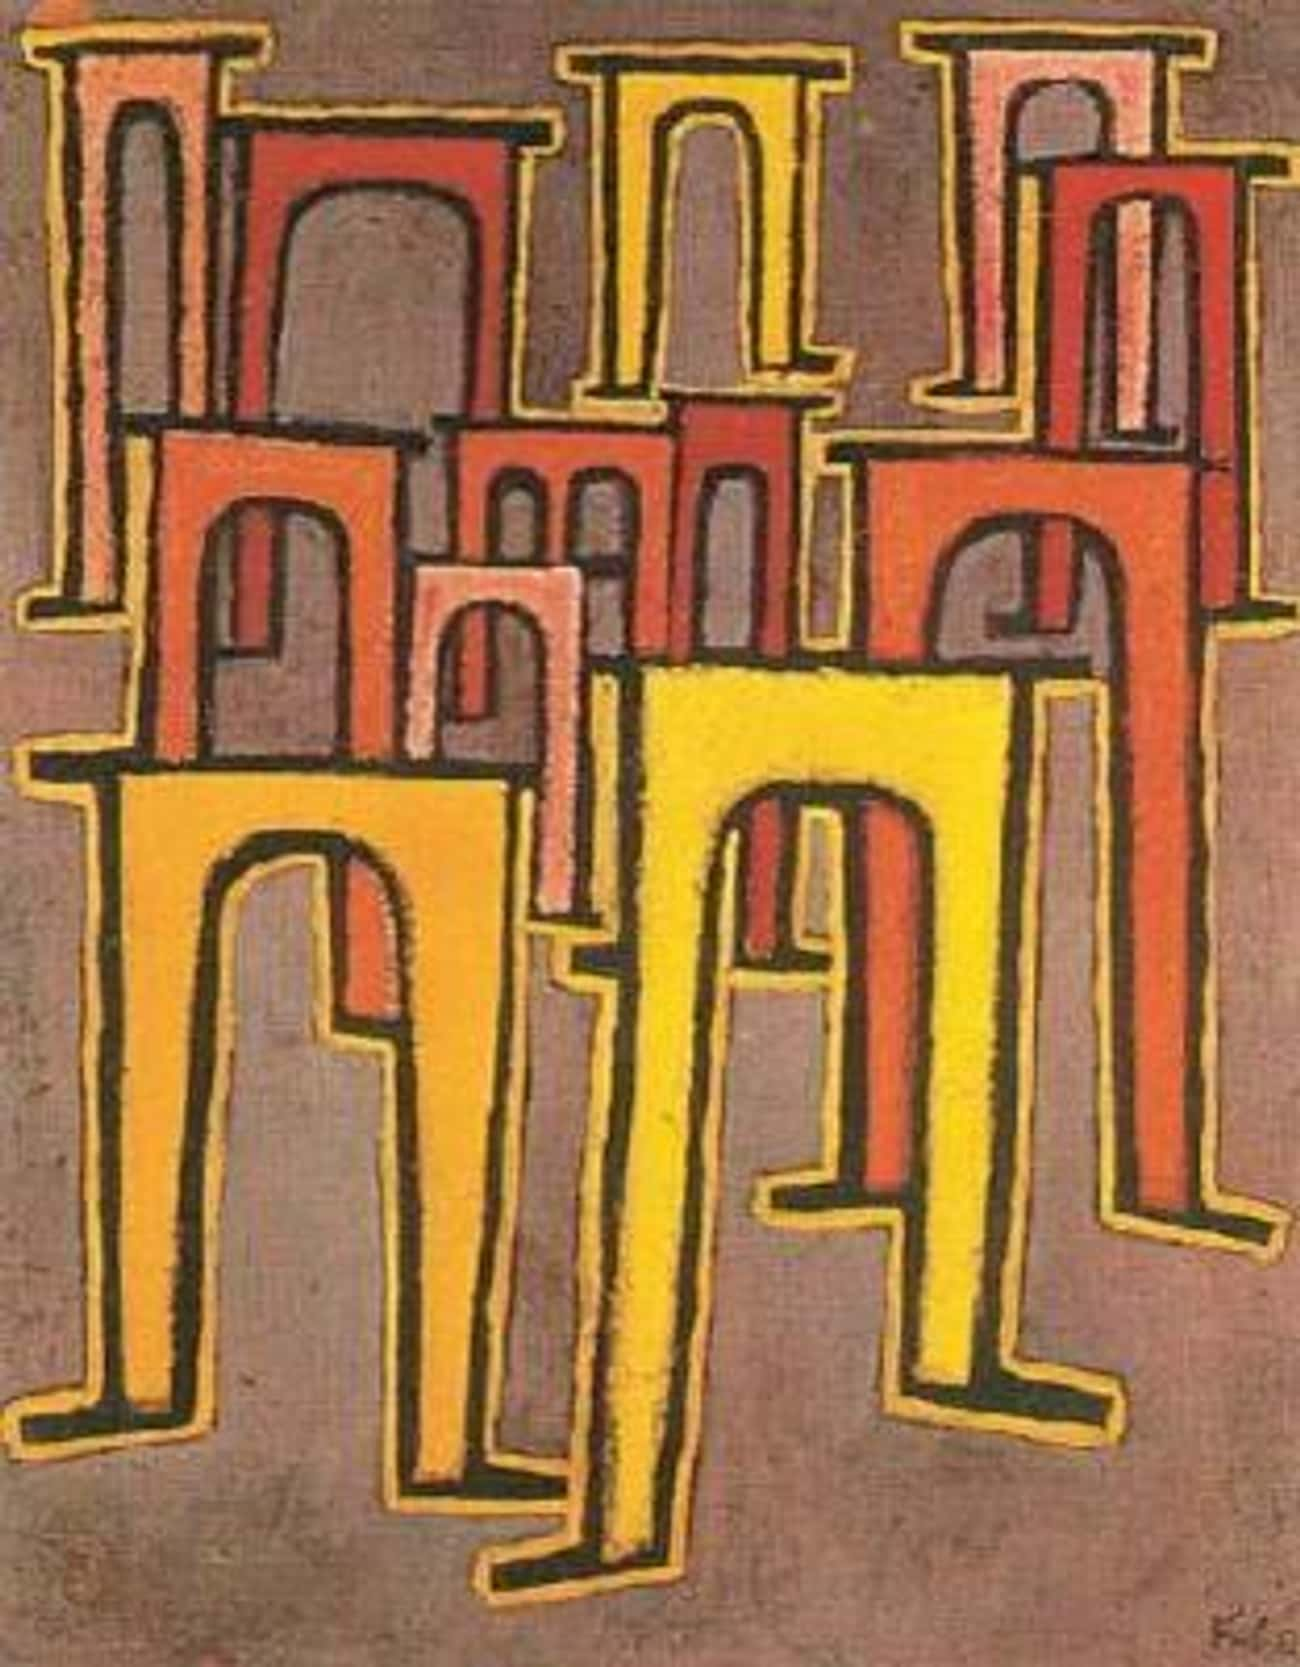 Revolution des Viadukts is listed (or ranked) 4 on the list Famous Modernism Paintings